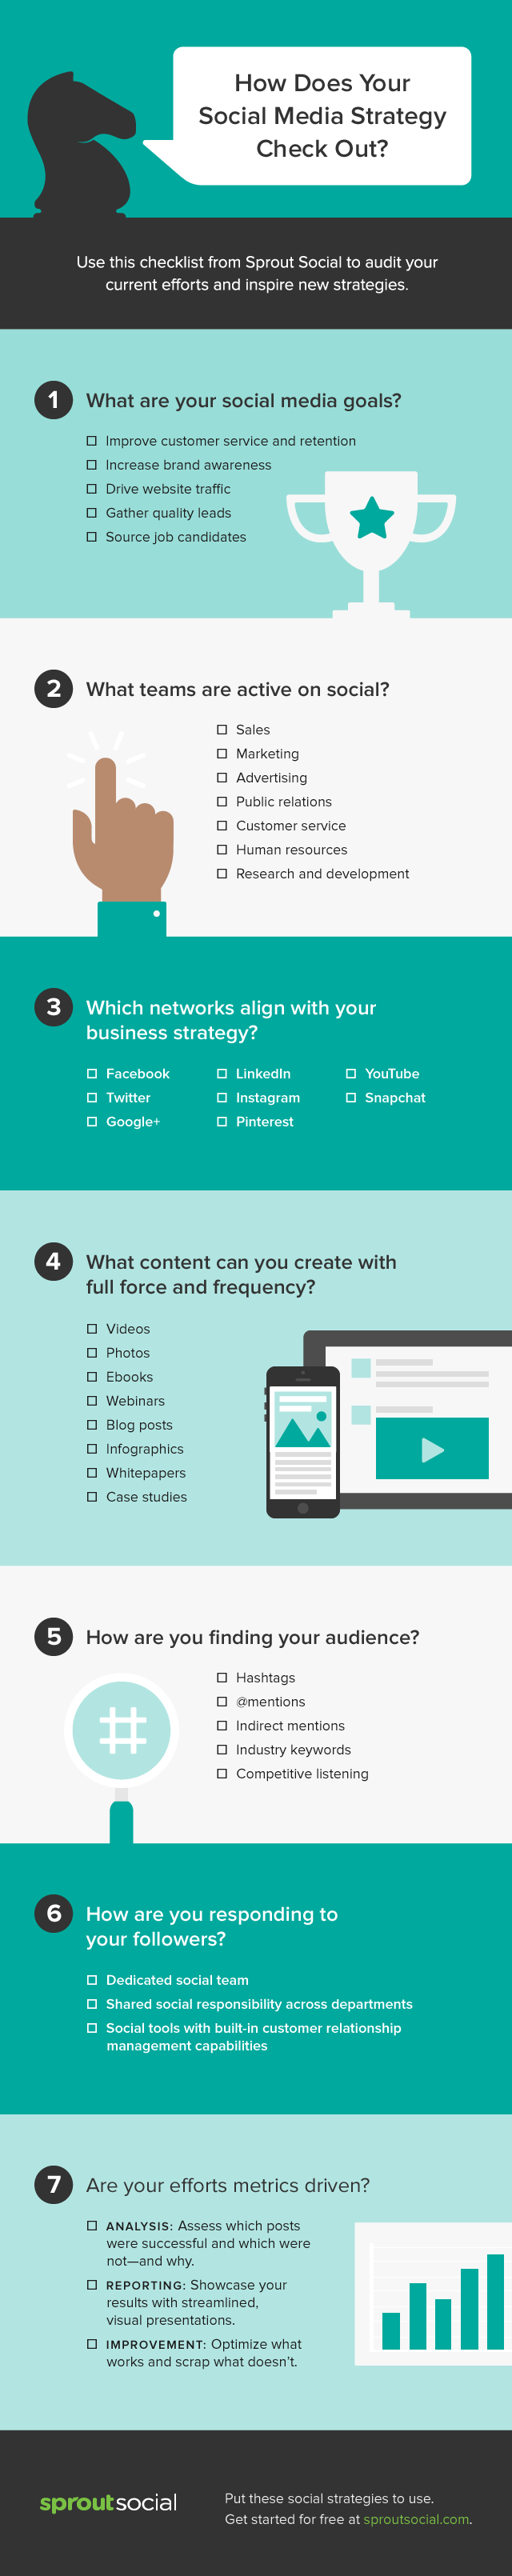 7 Steps To Take For A Social Media Strategy - #infographic ...